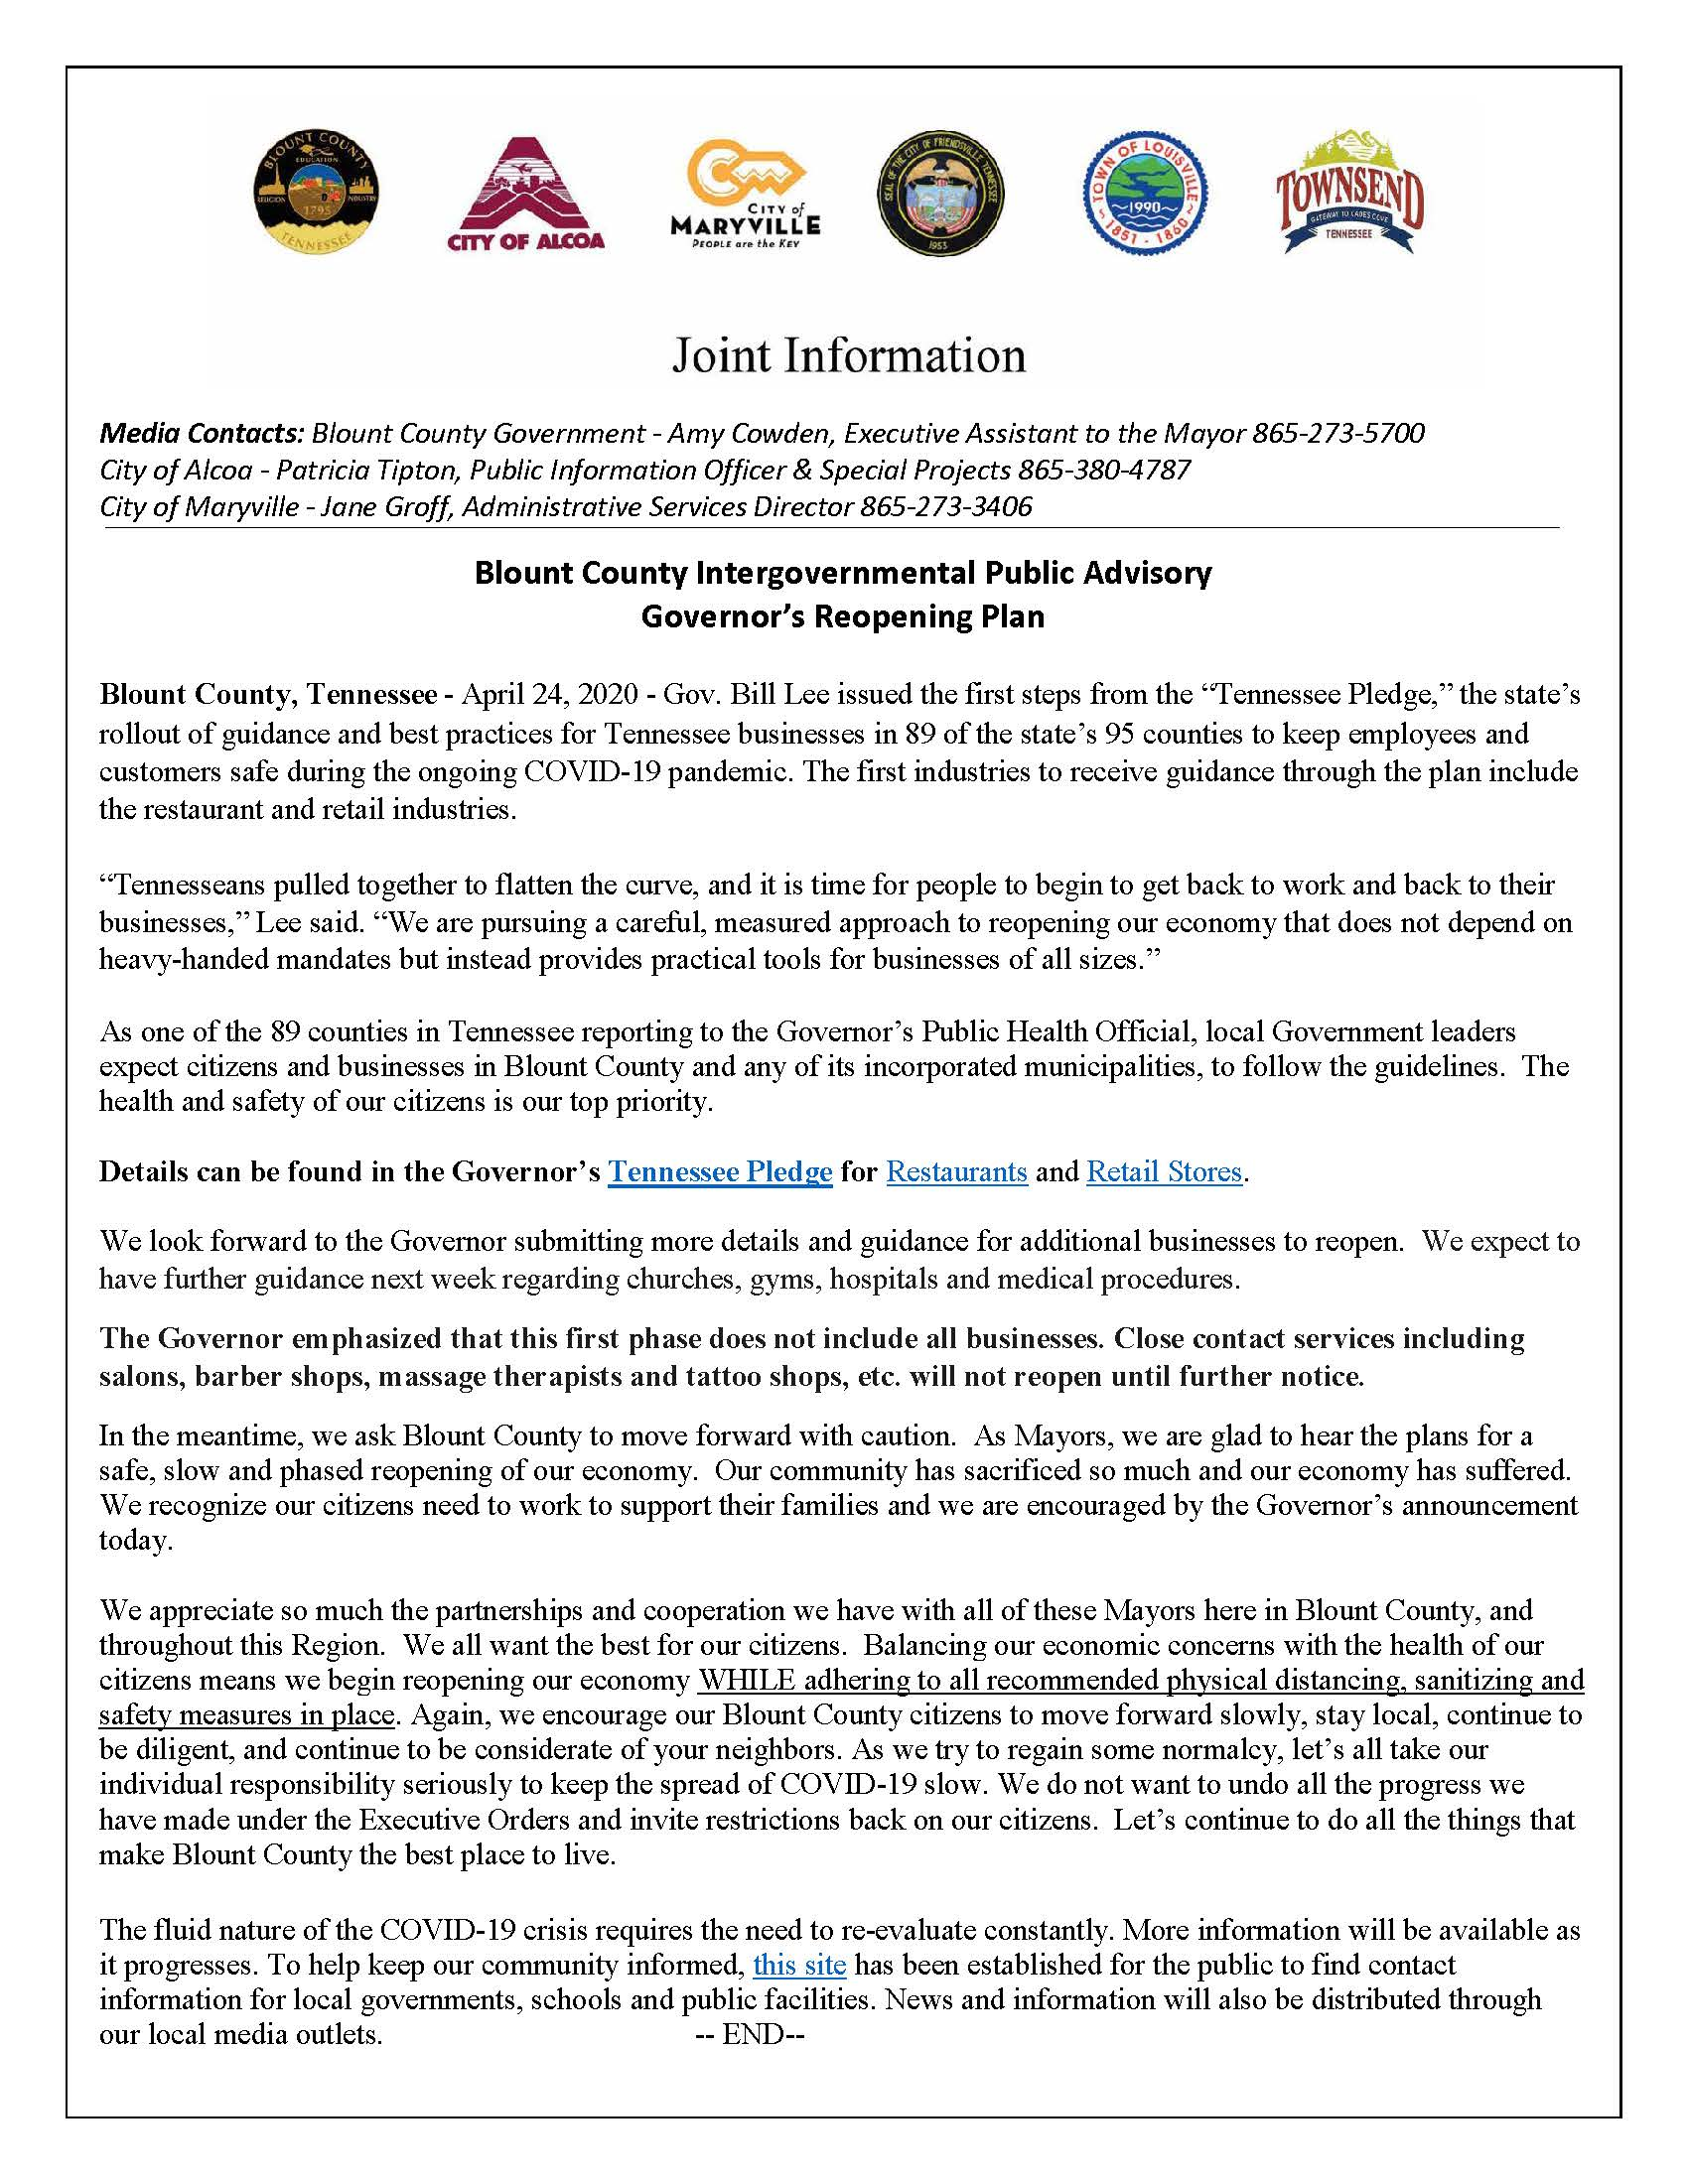 April 24. 2020 Joint Intergovernmental Advisory